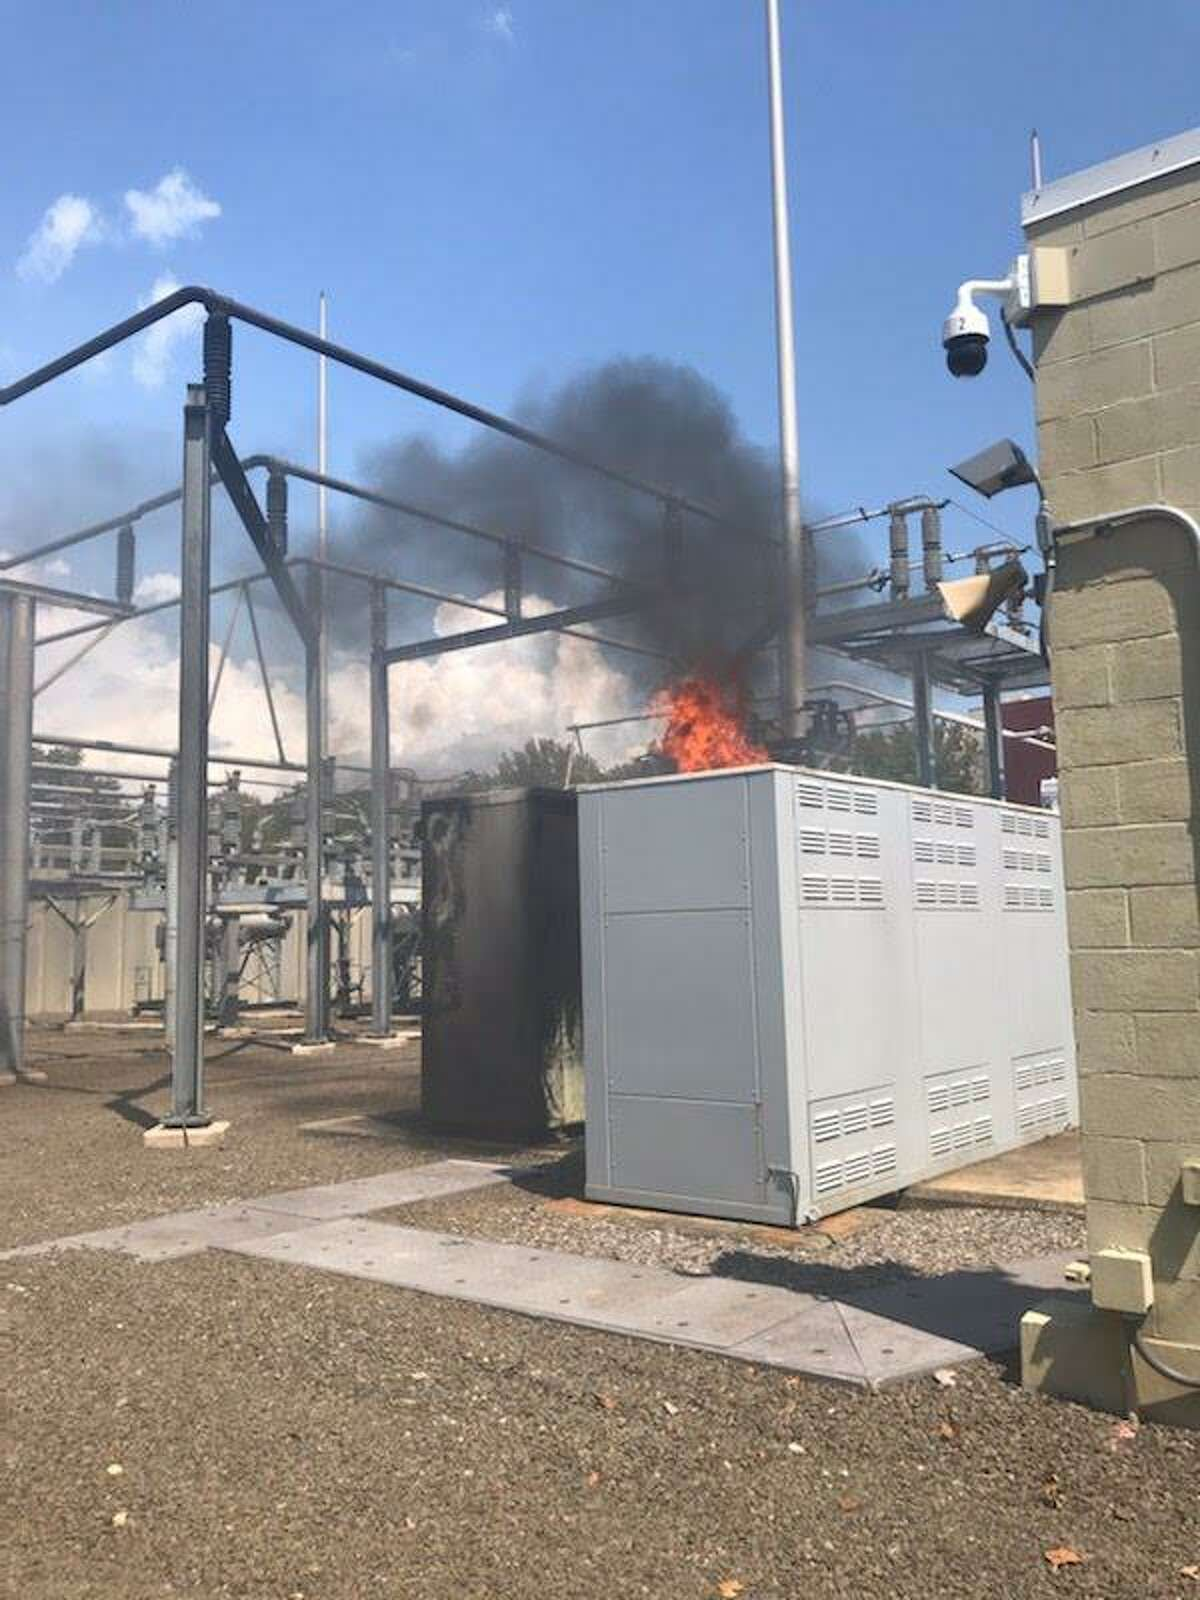 New Haven firefighters extinguished a blaze at the United Illuminating substation on Water Street Wednesday.